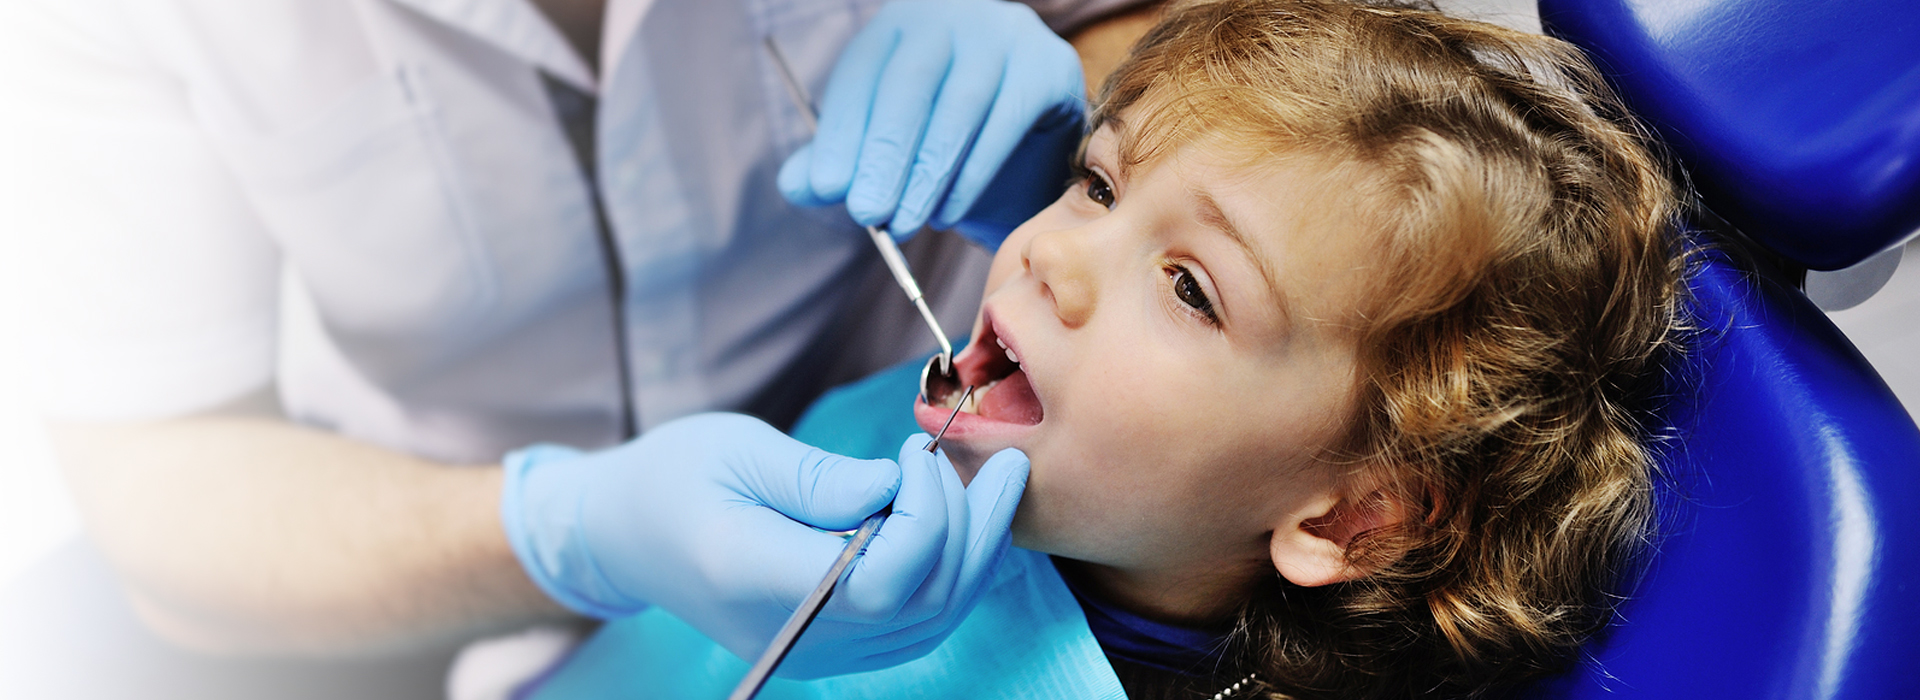 child getting a dental checkup